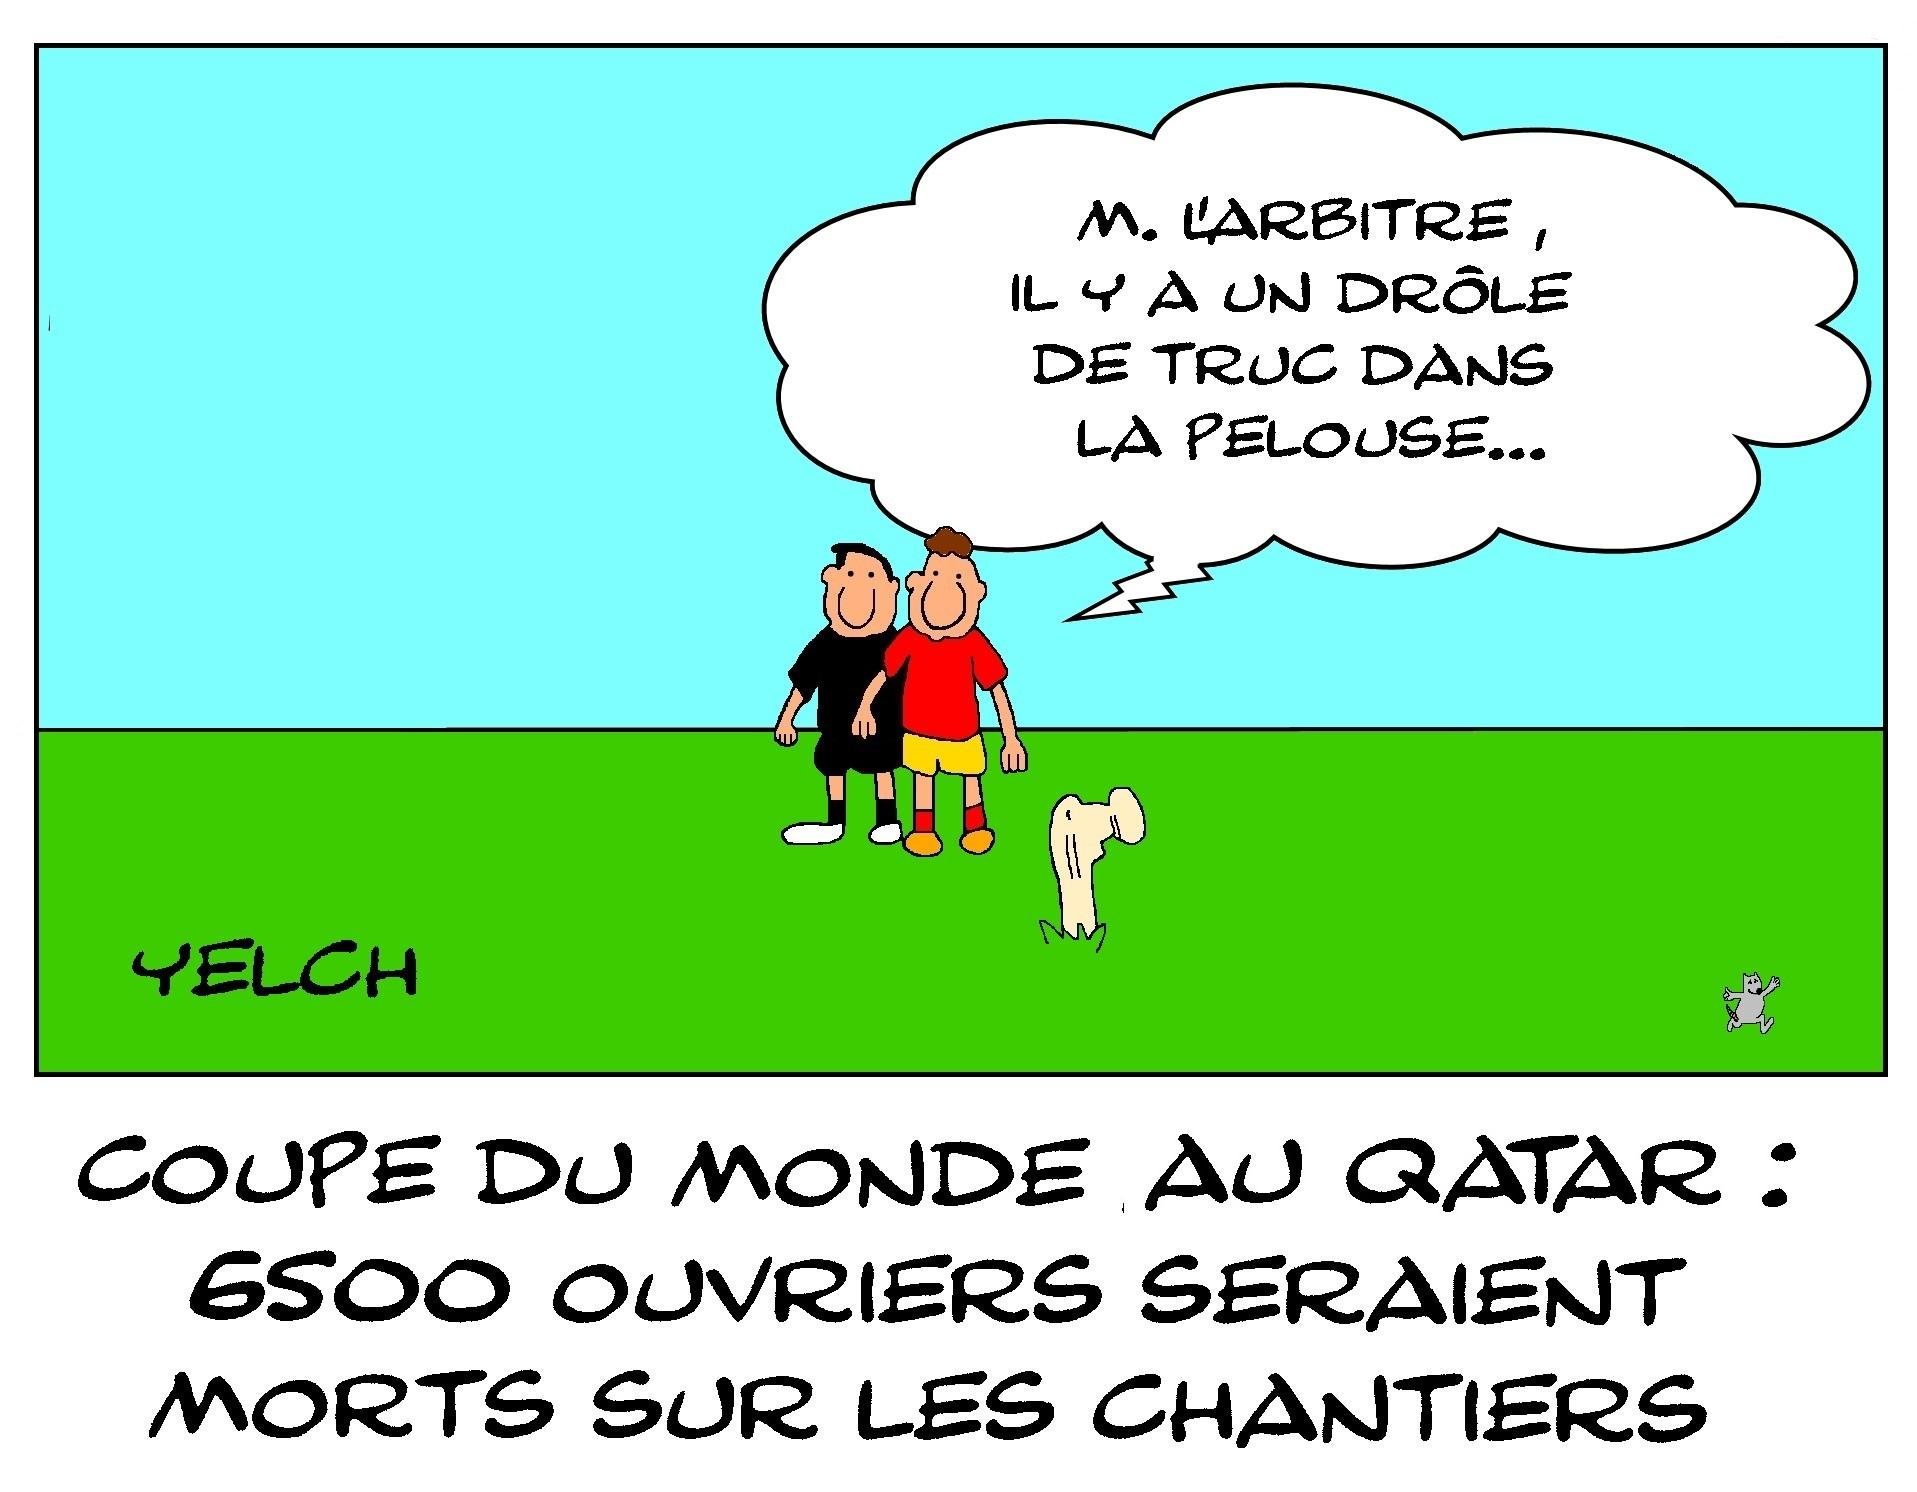 Coupe du monde mortelle